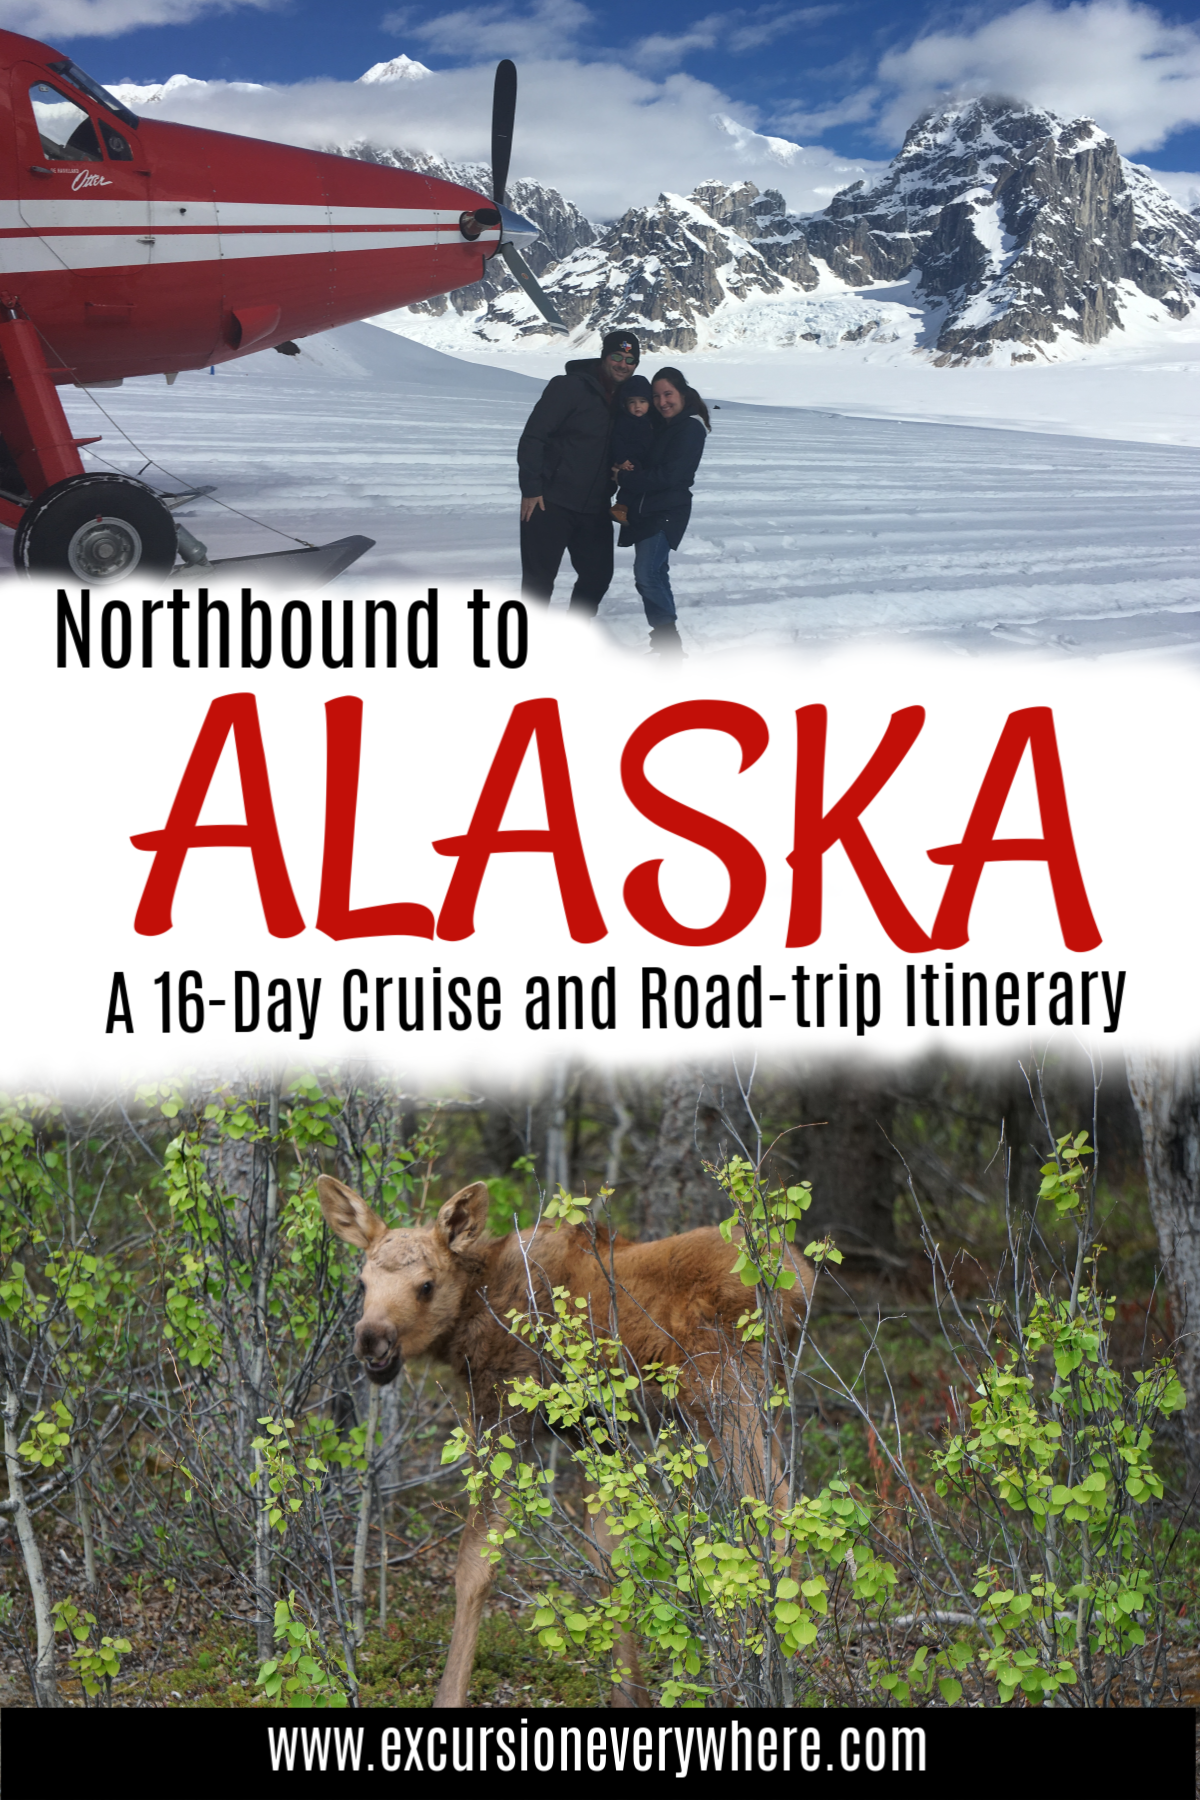 Travel blogger's 16-day itinerary to see Alaska by cruise ship and by road-trip! Includes a detailed itinerary, road-trip map, tons of photos, hotels, restaurant recommendations and more! www.excursioneverywhere.com